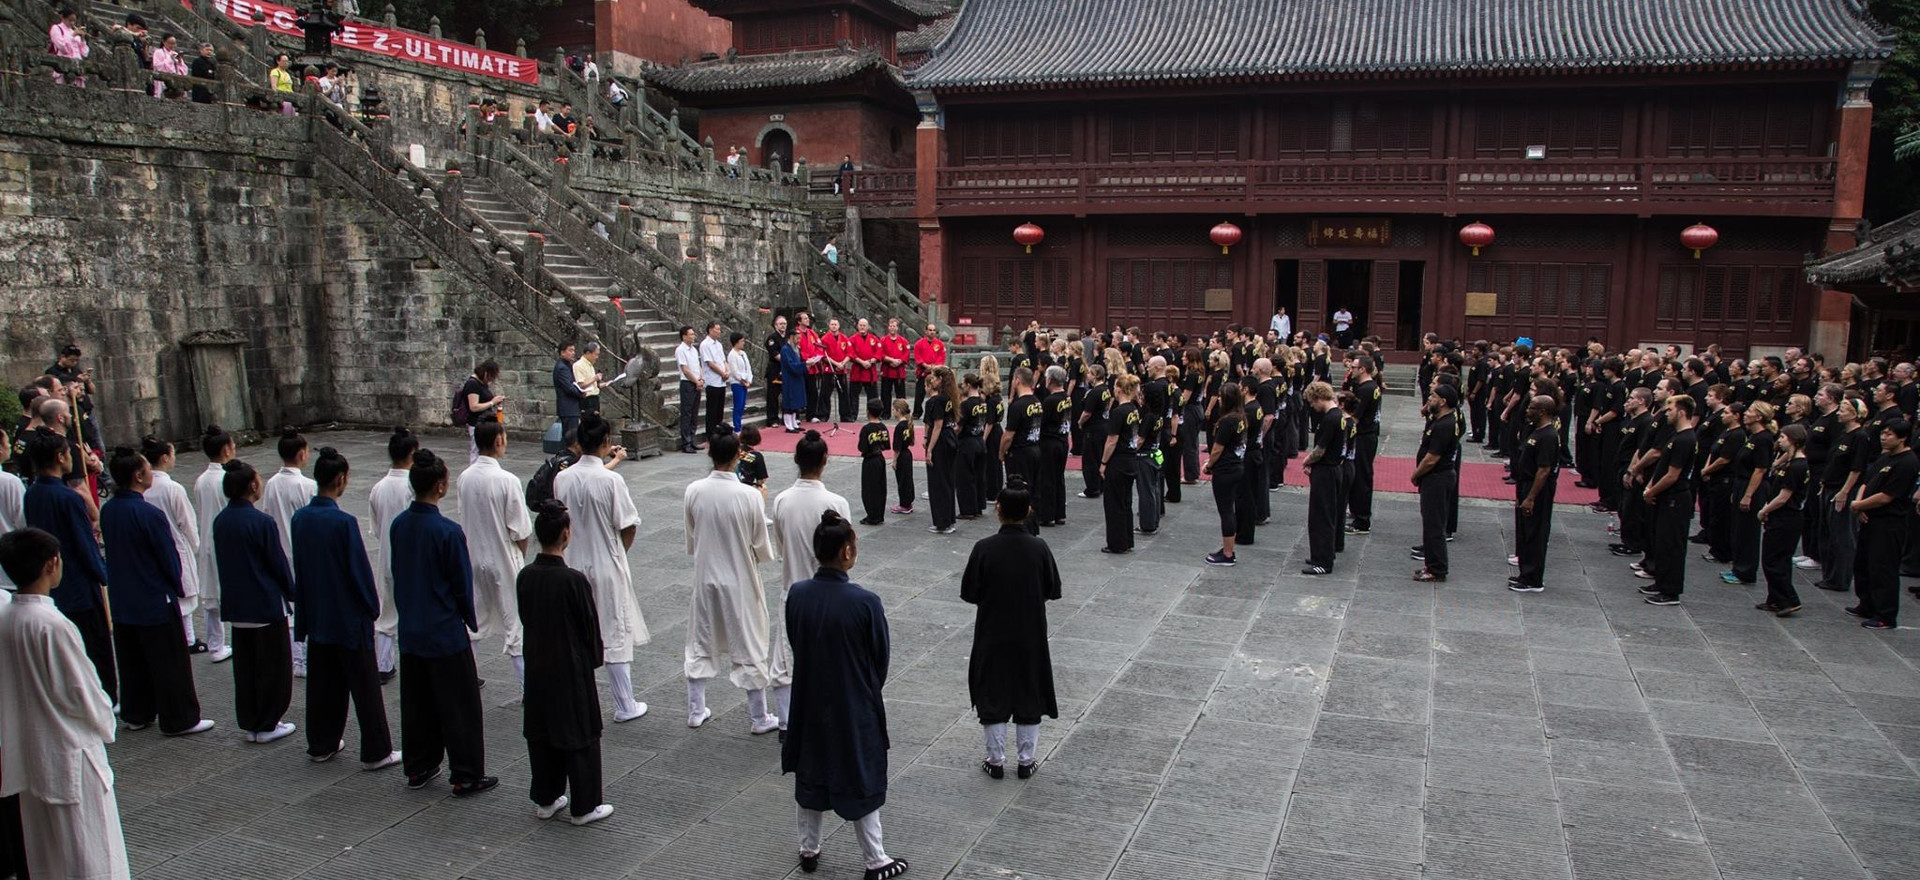 Z-Ultimate at Wudang Mountain